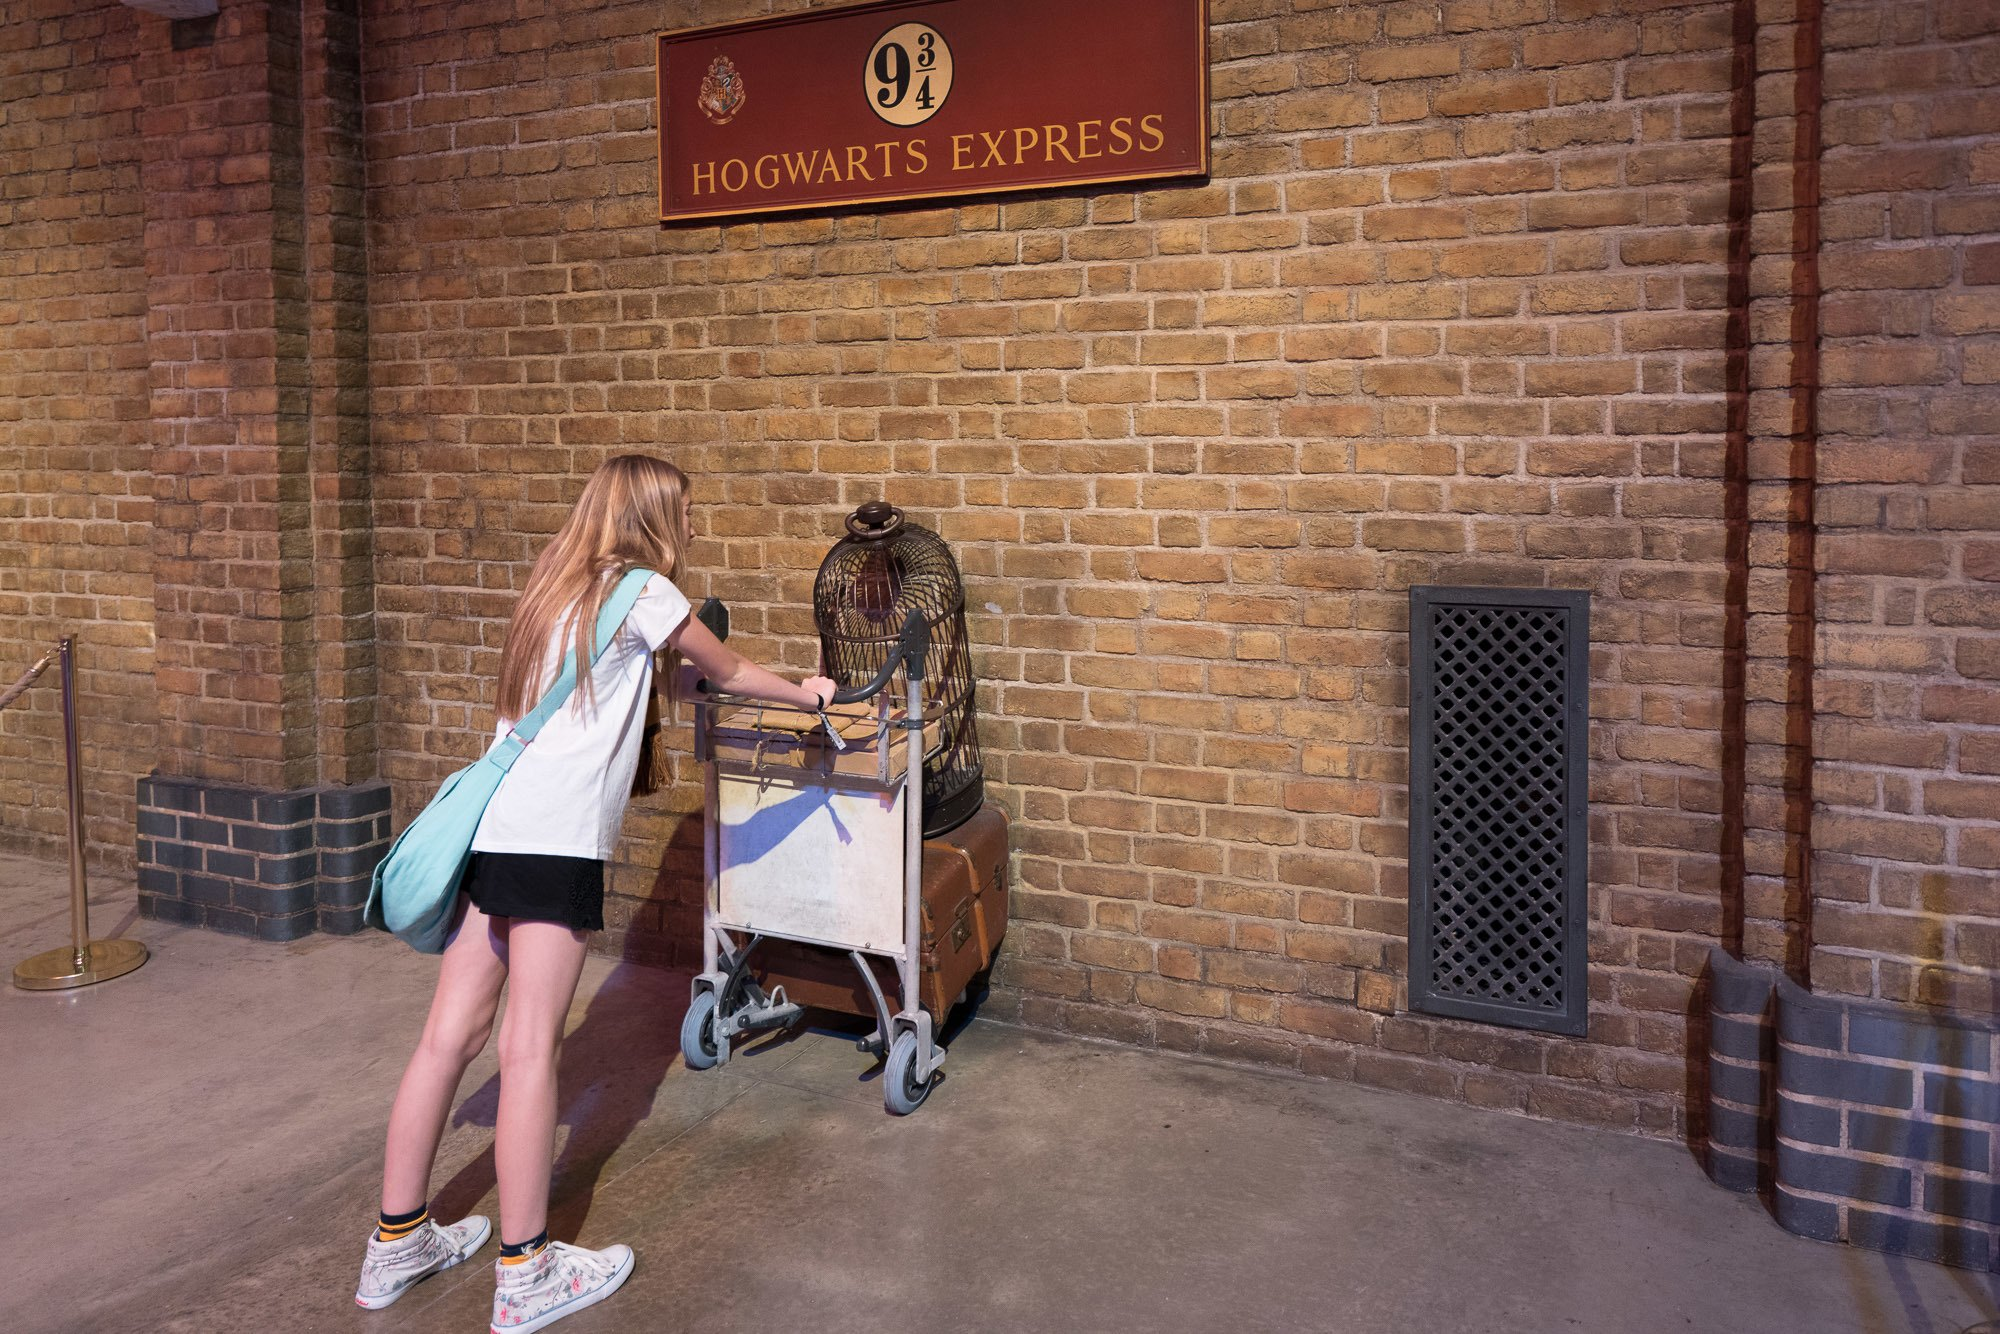 The infamous Platform 9 3/4 photo that Harry Potter fans love to take in London.